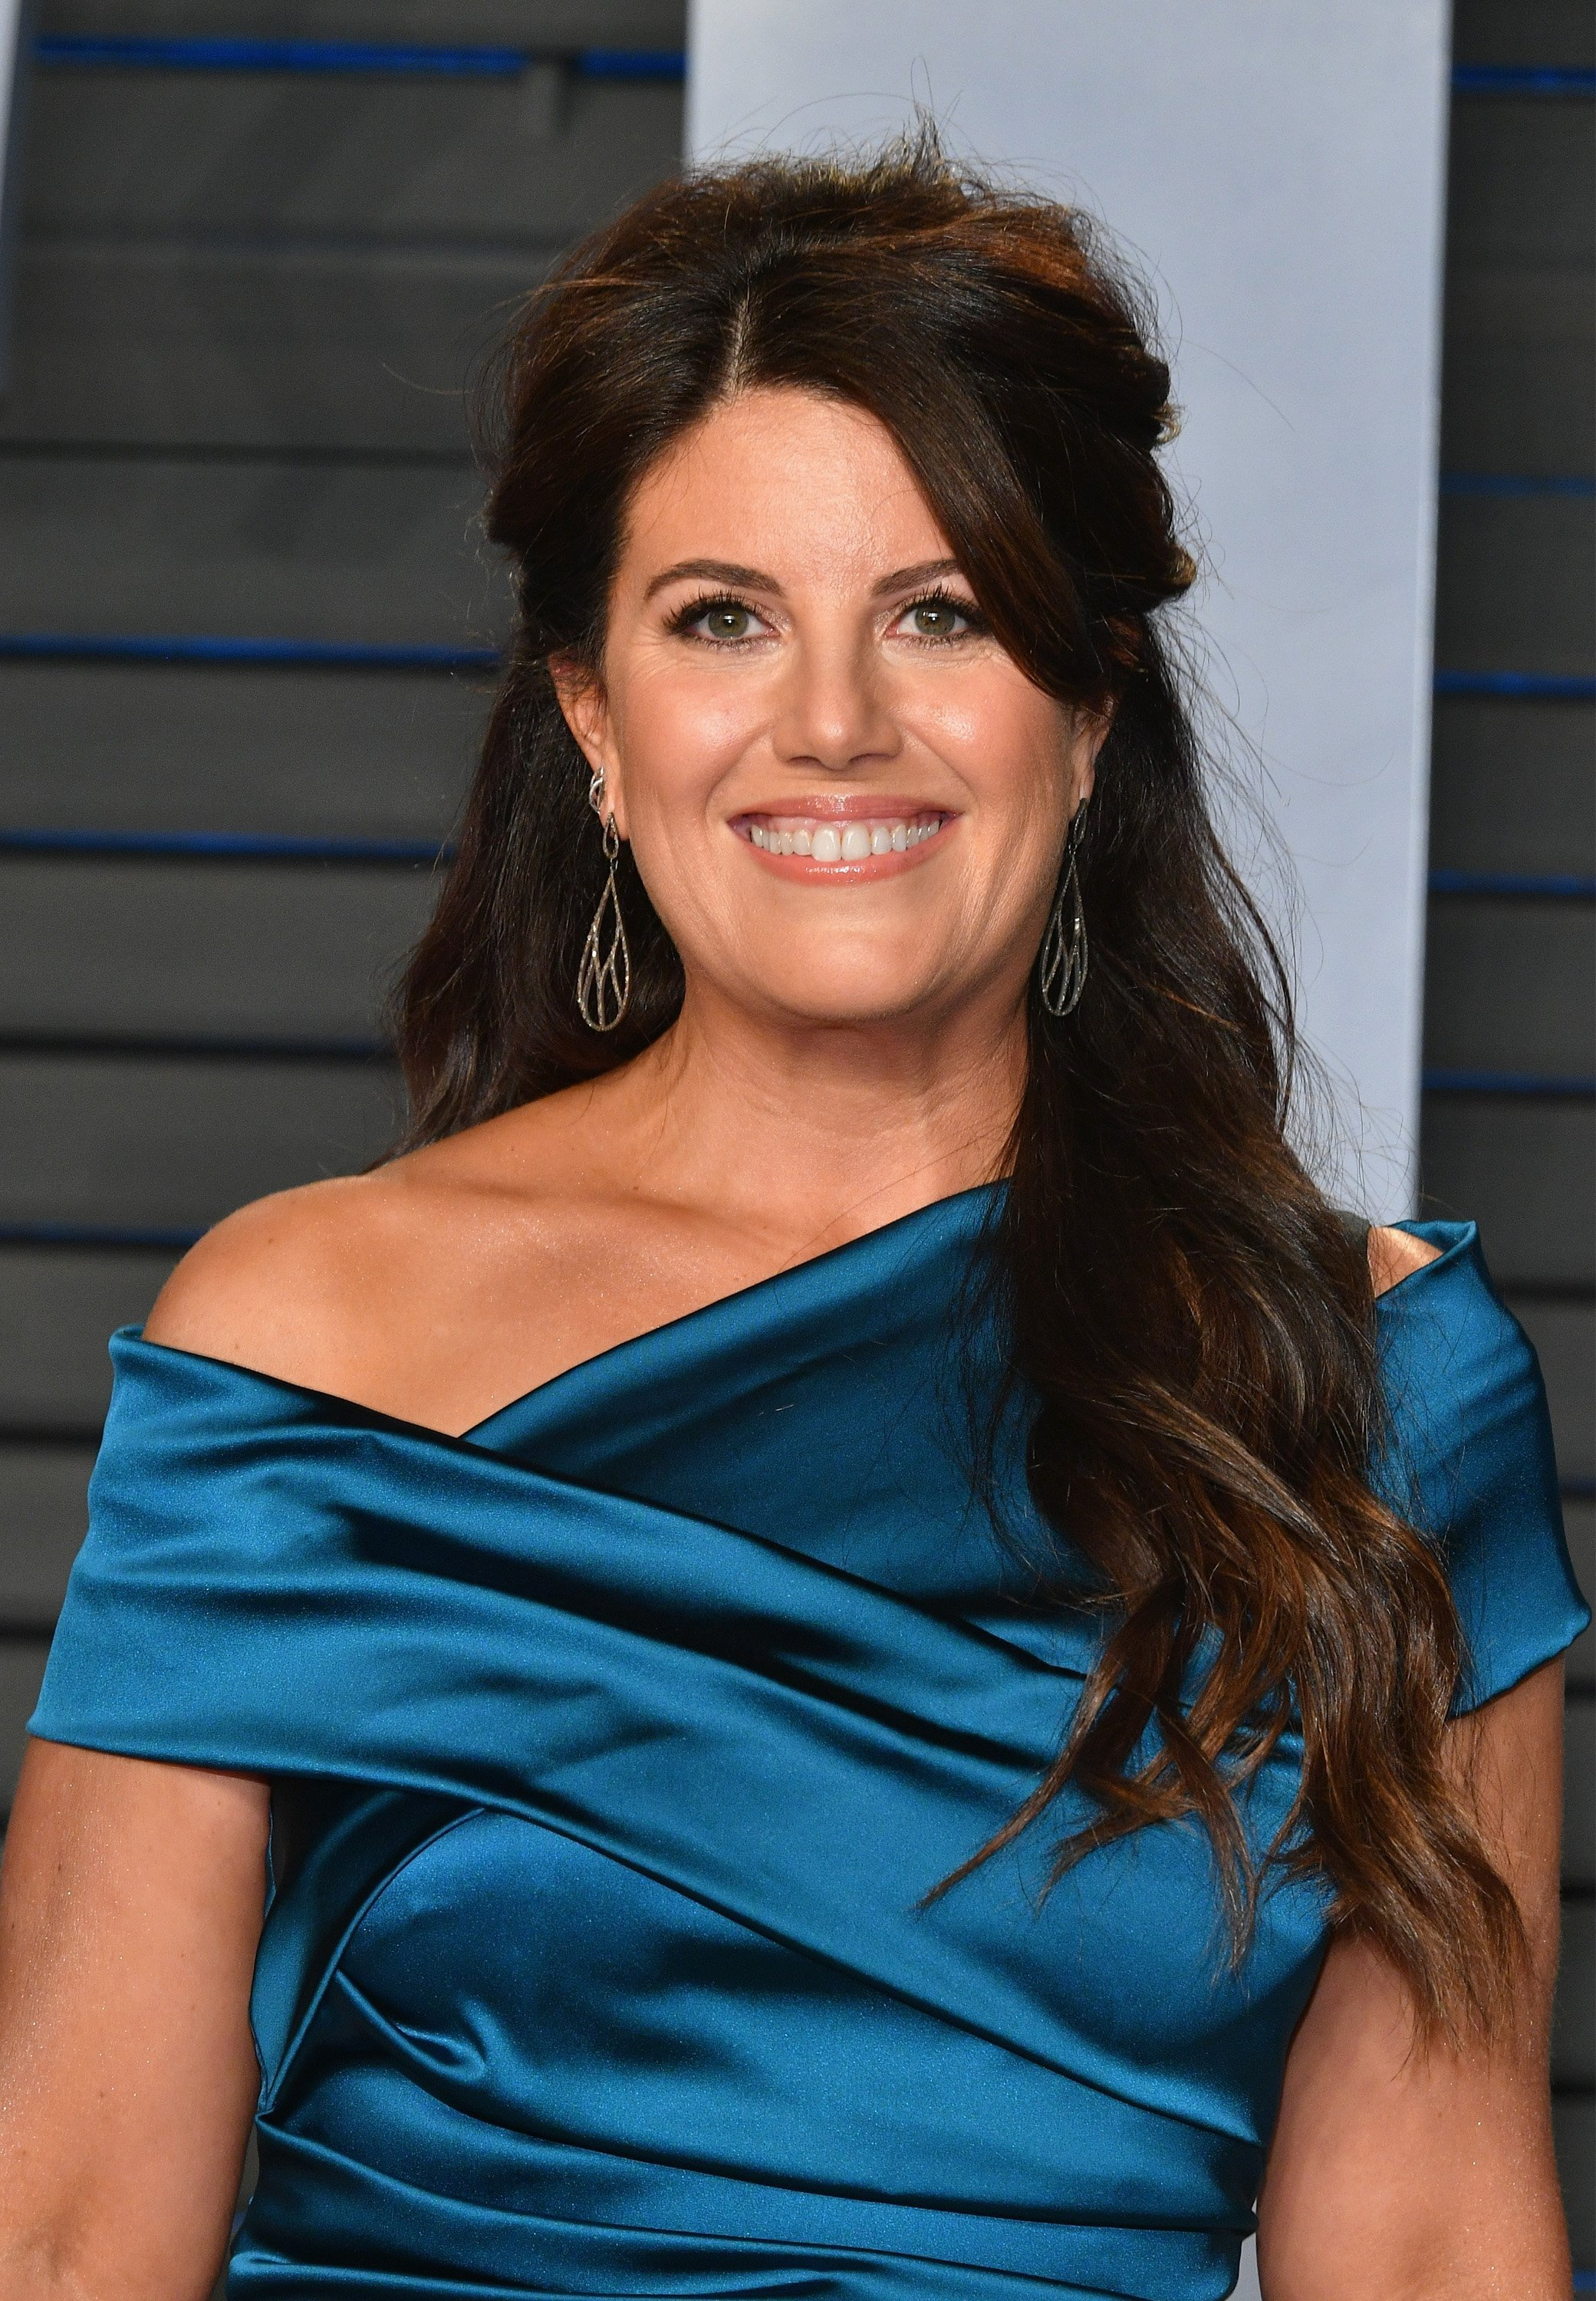 Monica Lewinsky shared the worst career advice she's gotten and, well…